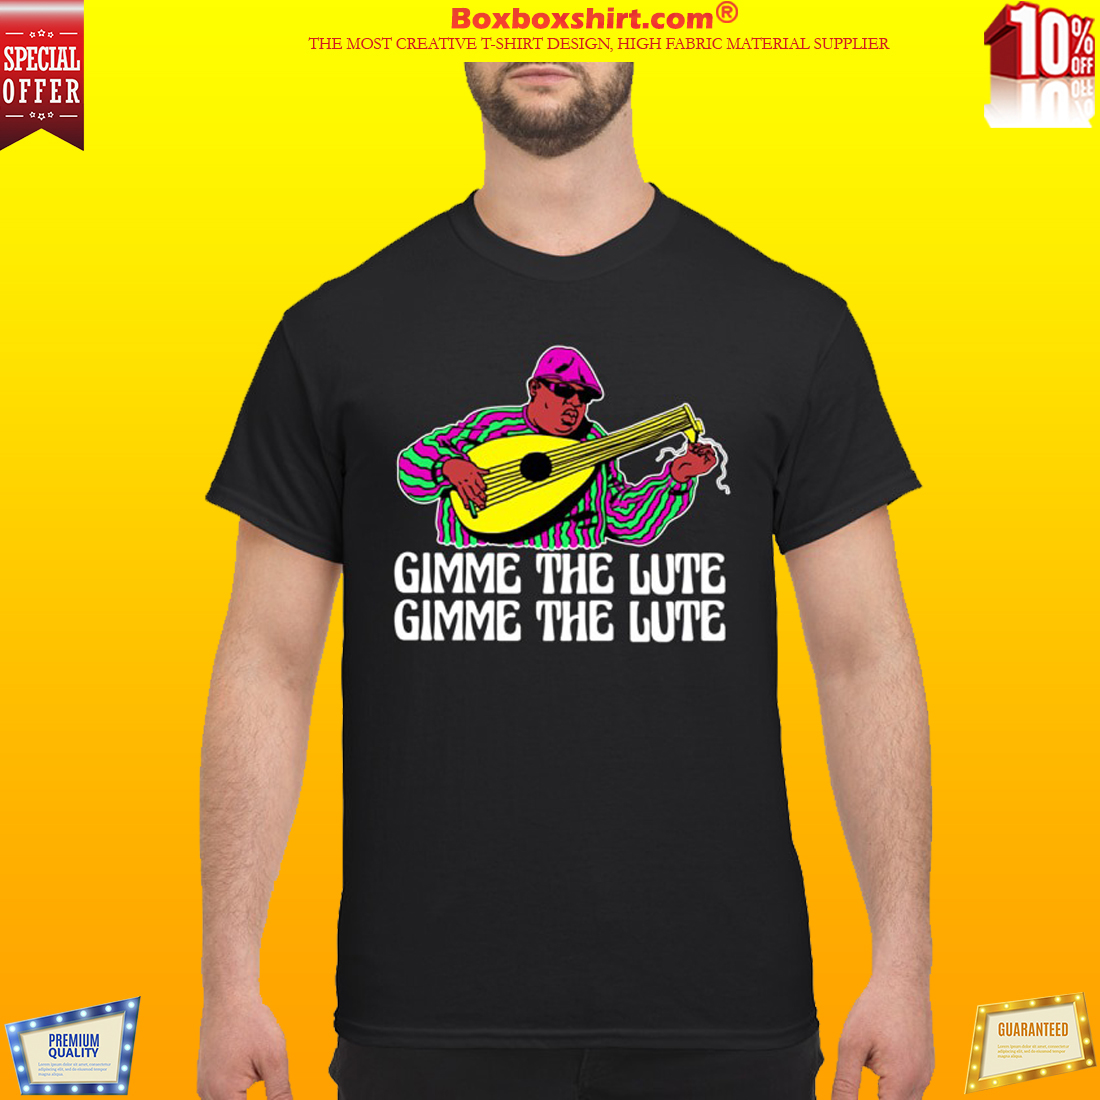 Notrorious BIG gimme the lute shirt